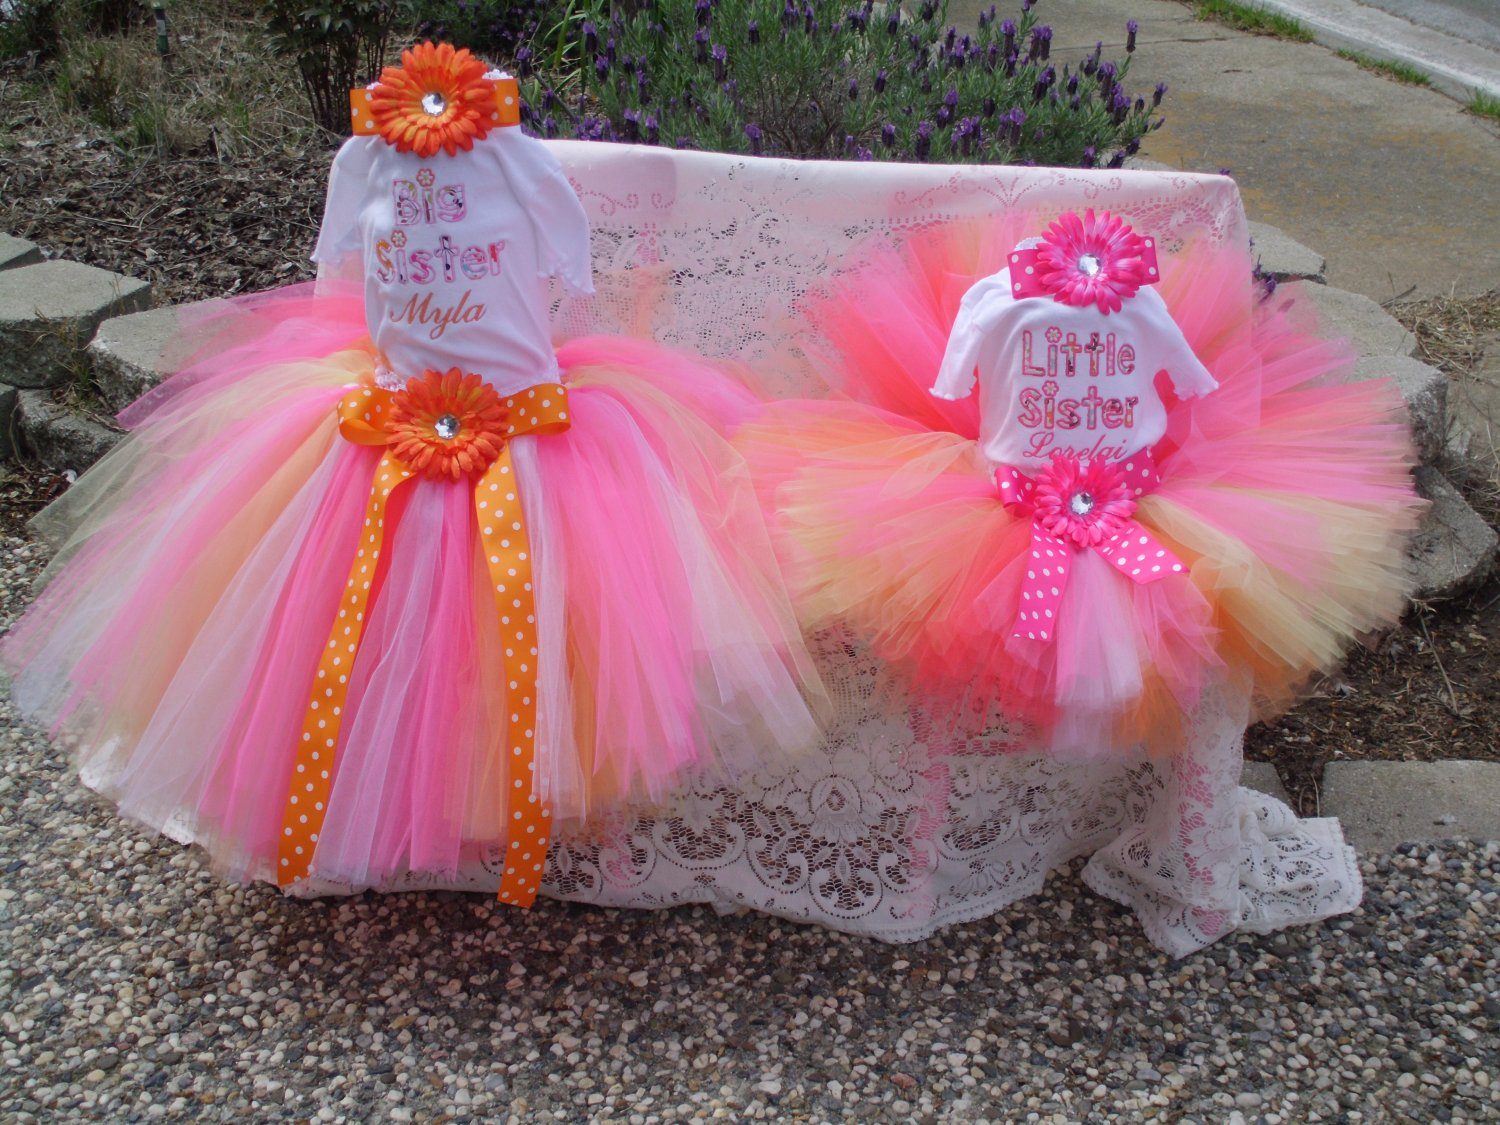 Big Sister and Little Sister Embroidered Shirt and matching sunset tutus